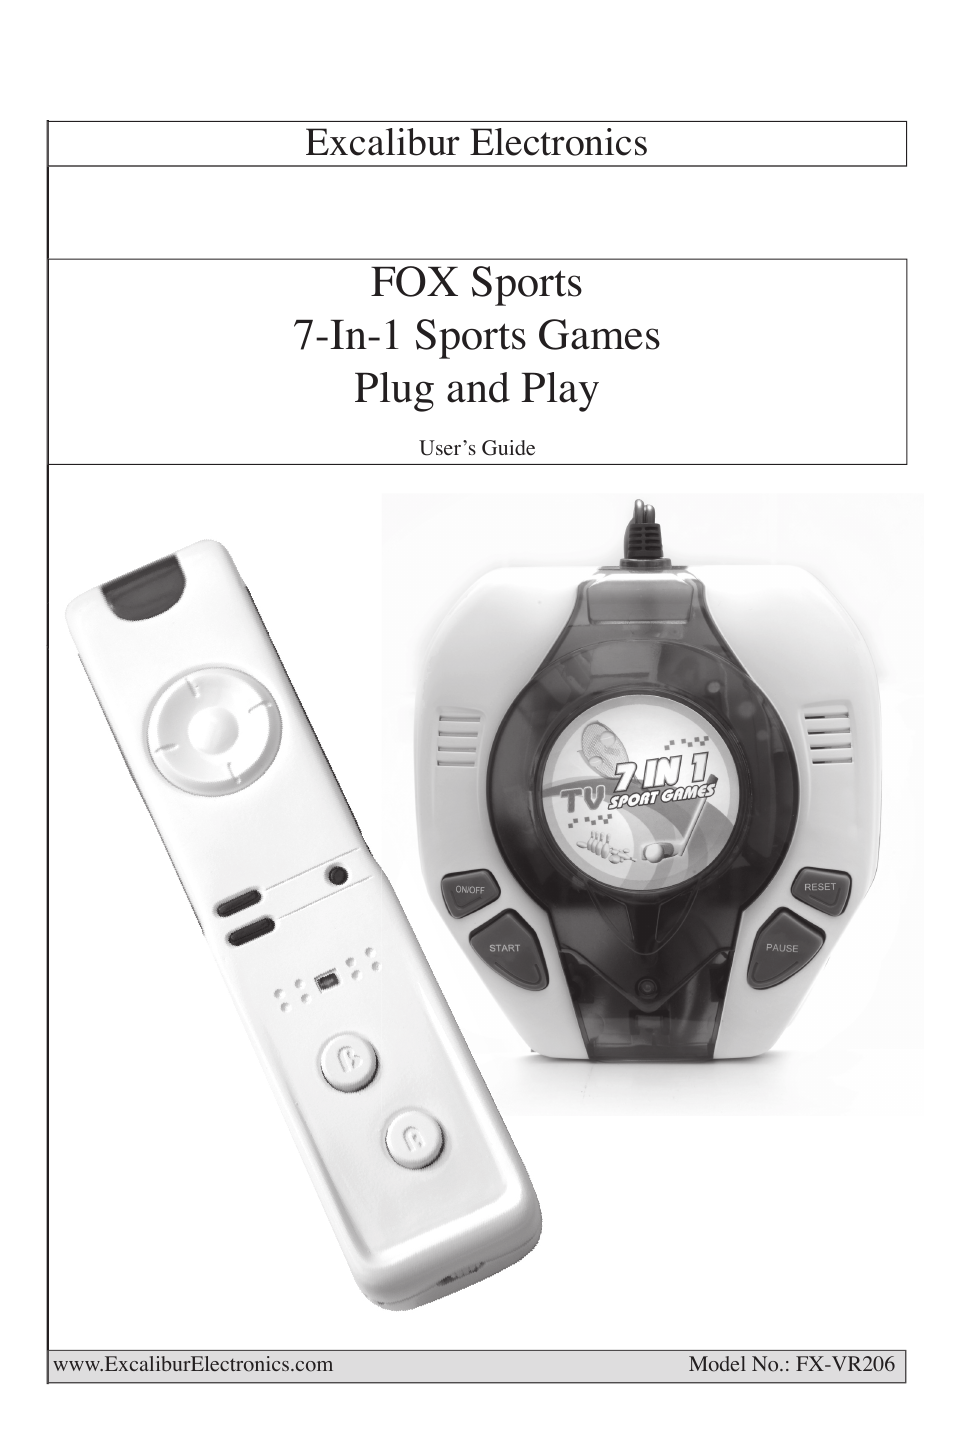 excalibur fx vr206 fox sports 7 in 1 plug play user manual 8 pages rh manualsdir com Excalibur Automatic Bingo Calling Excalibur Touch Chess Game 2